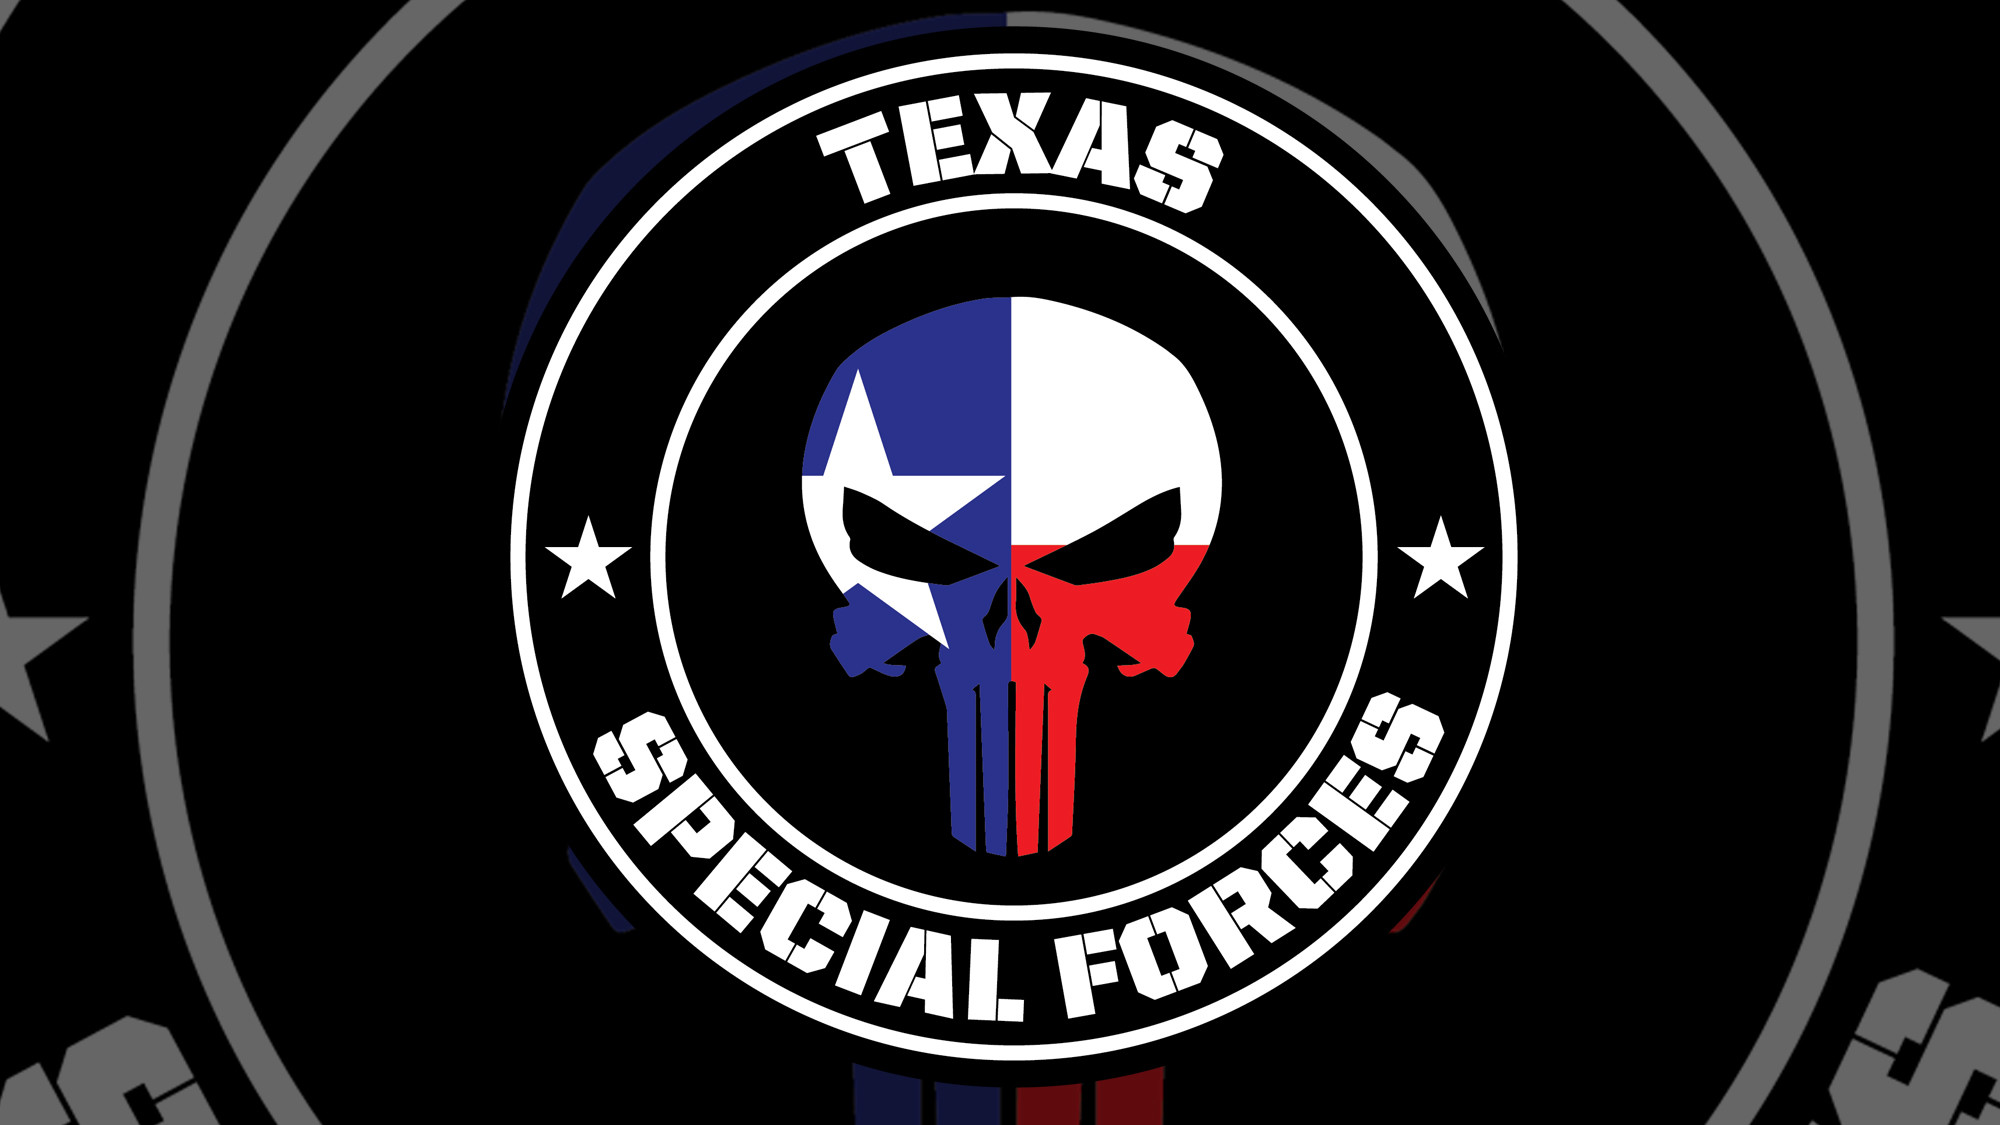 special forces logo wallpaper 183��